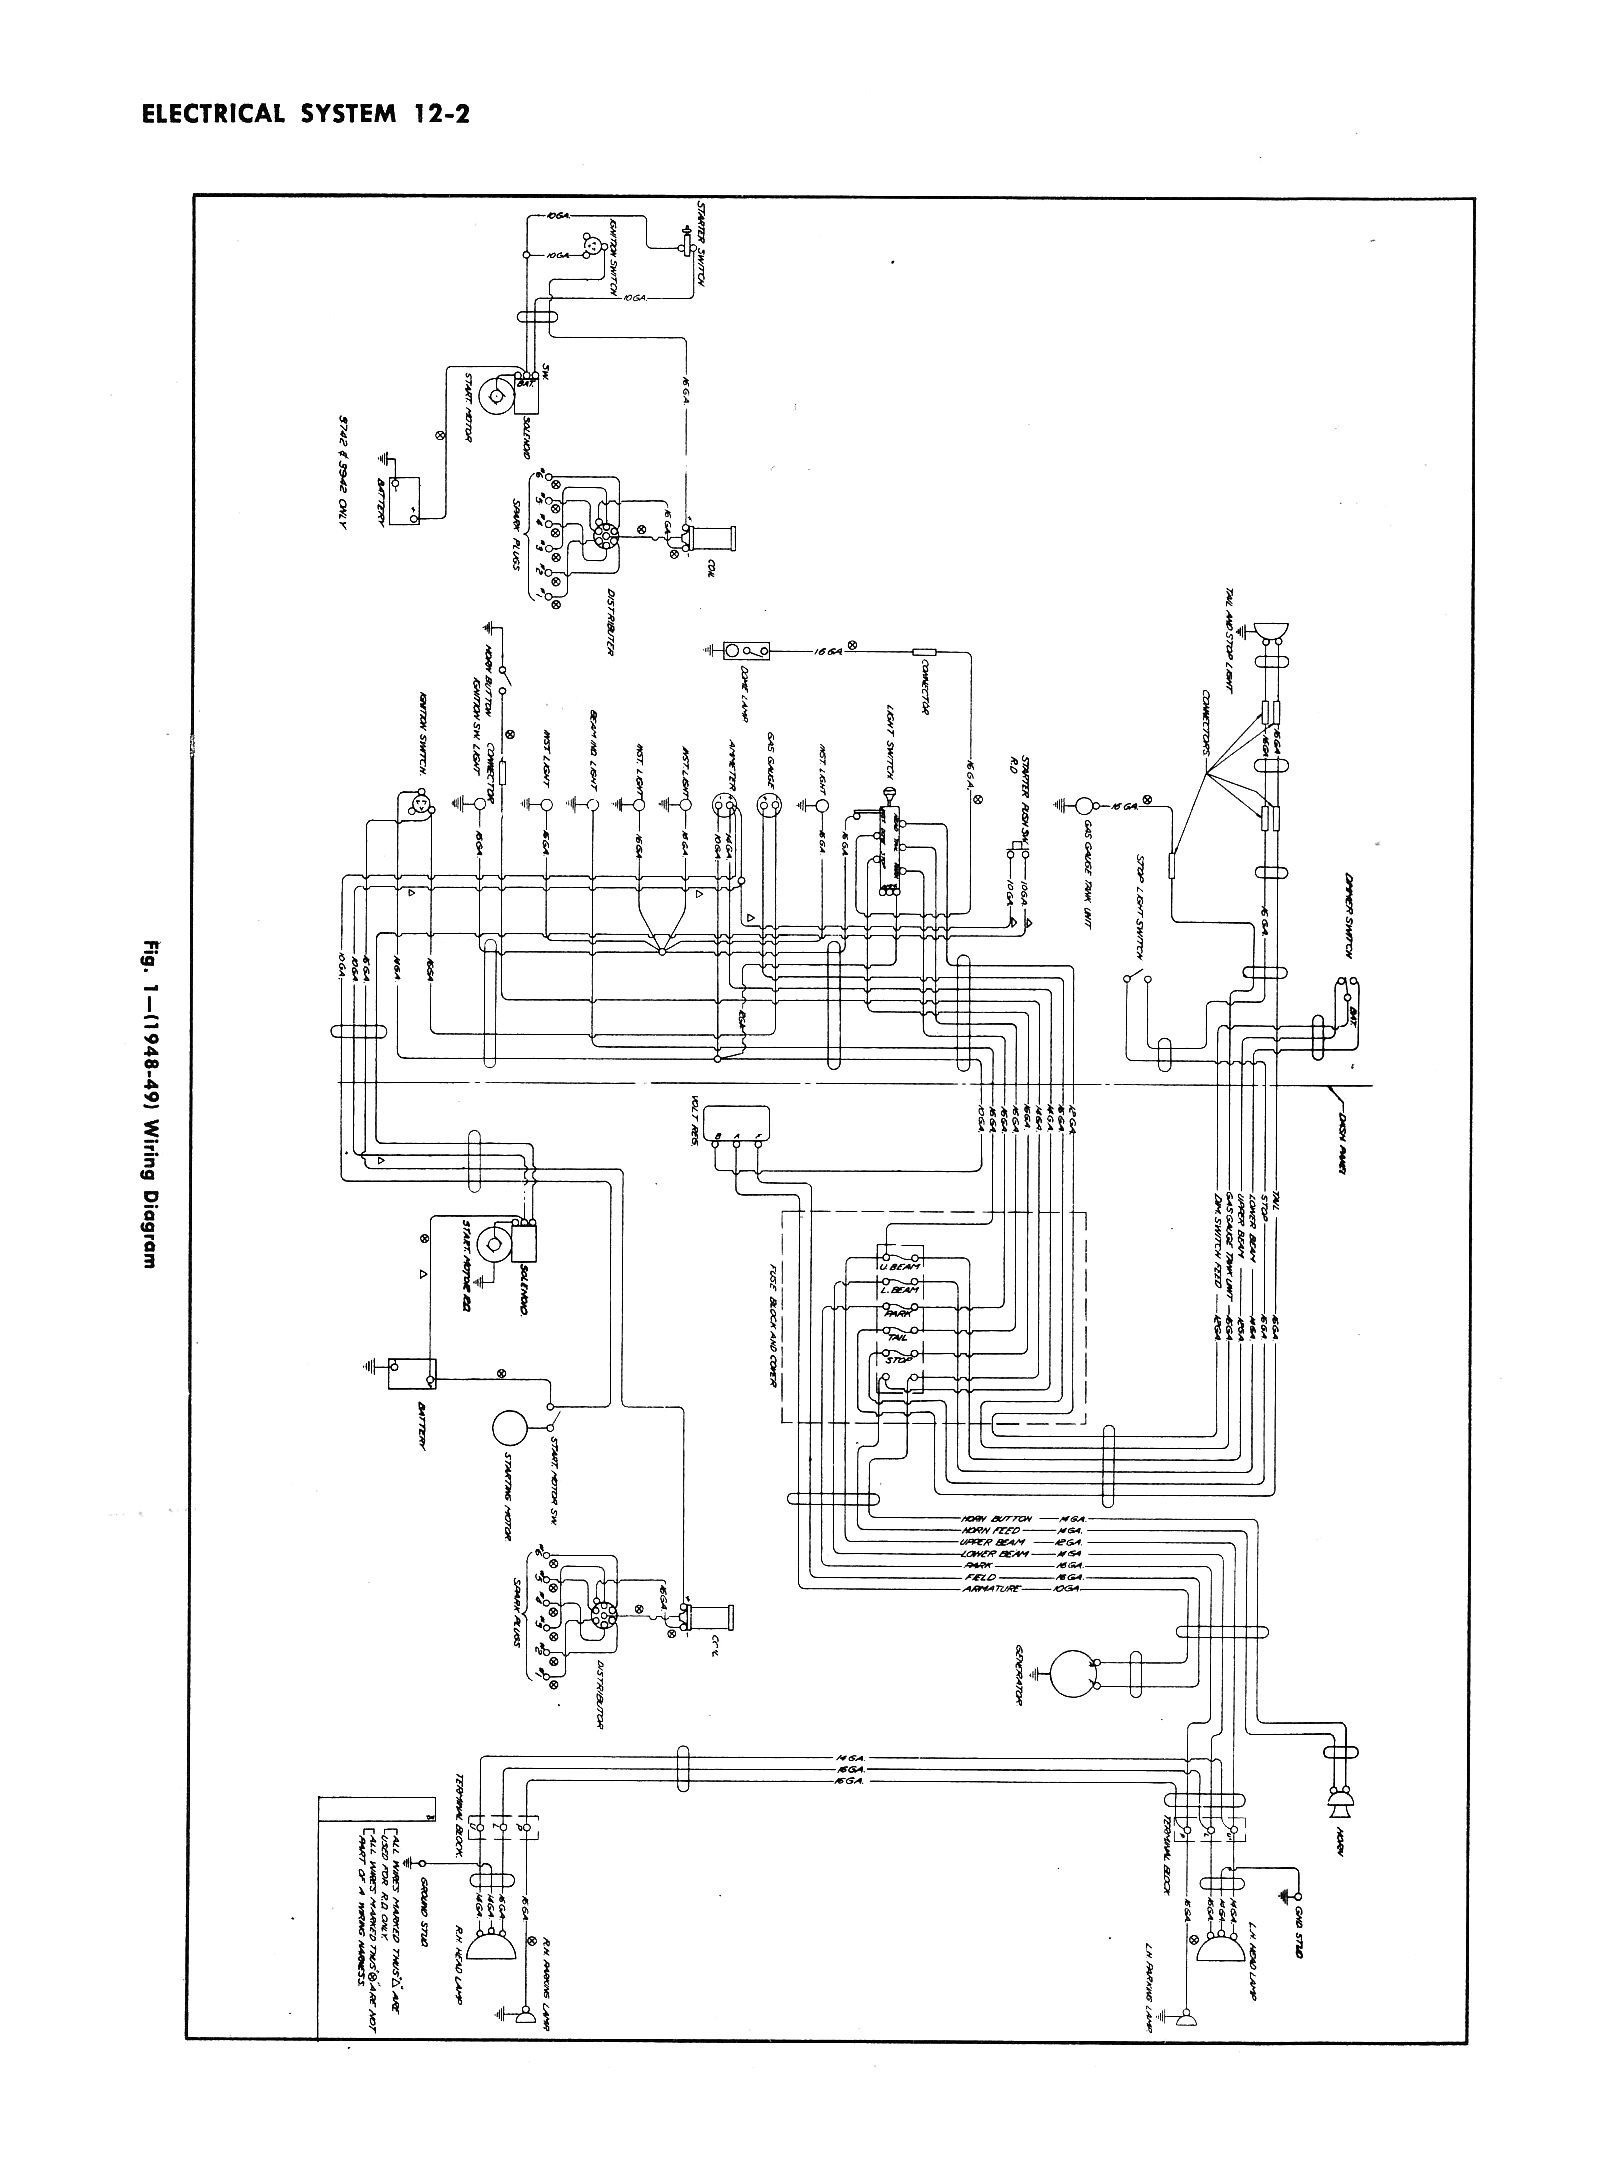 49 chevy truck wiring diagram